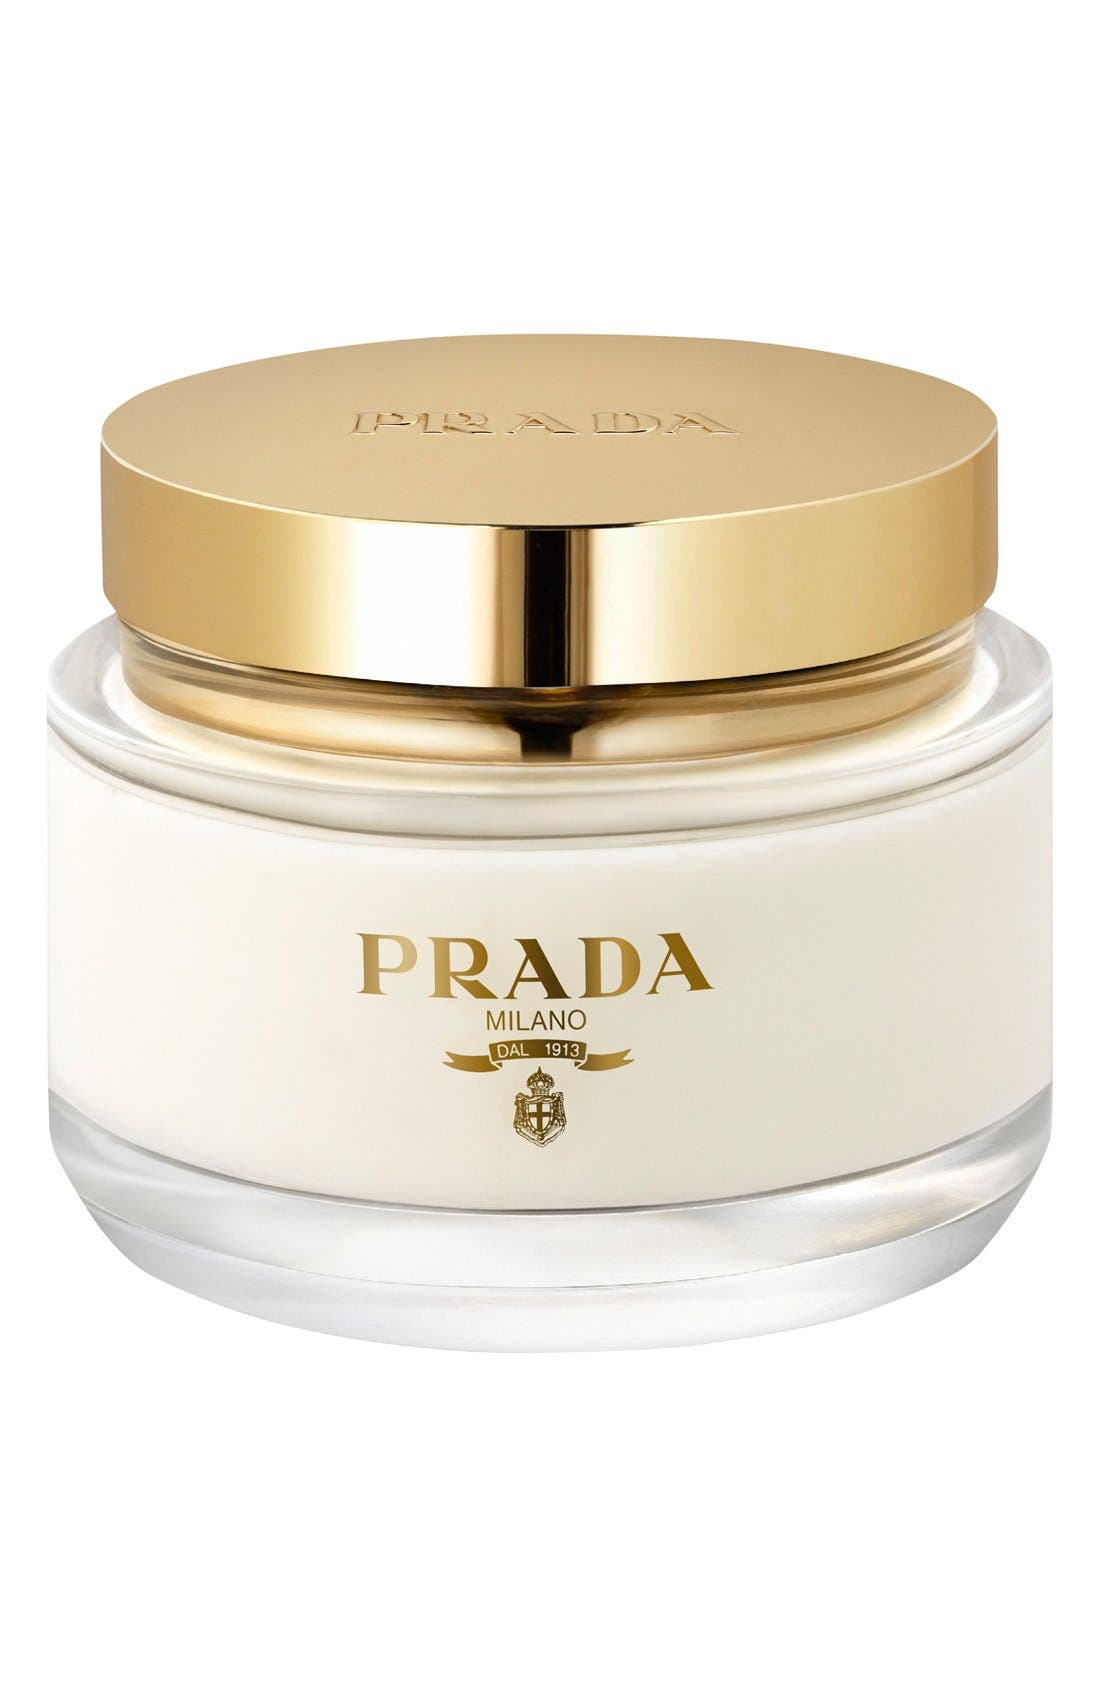 PRADA 'La Femme Prada' Body Cream, Main, color, NO COLOR